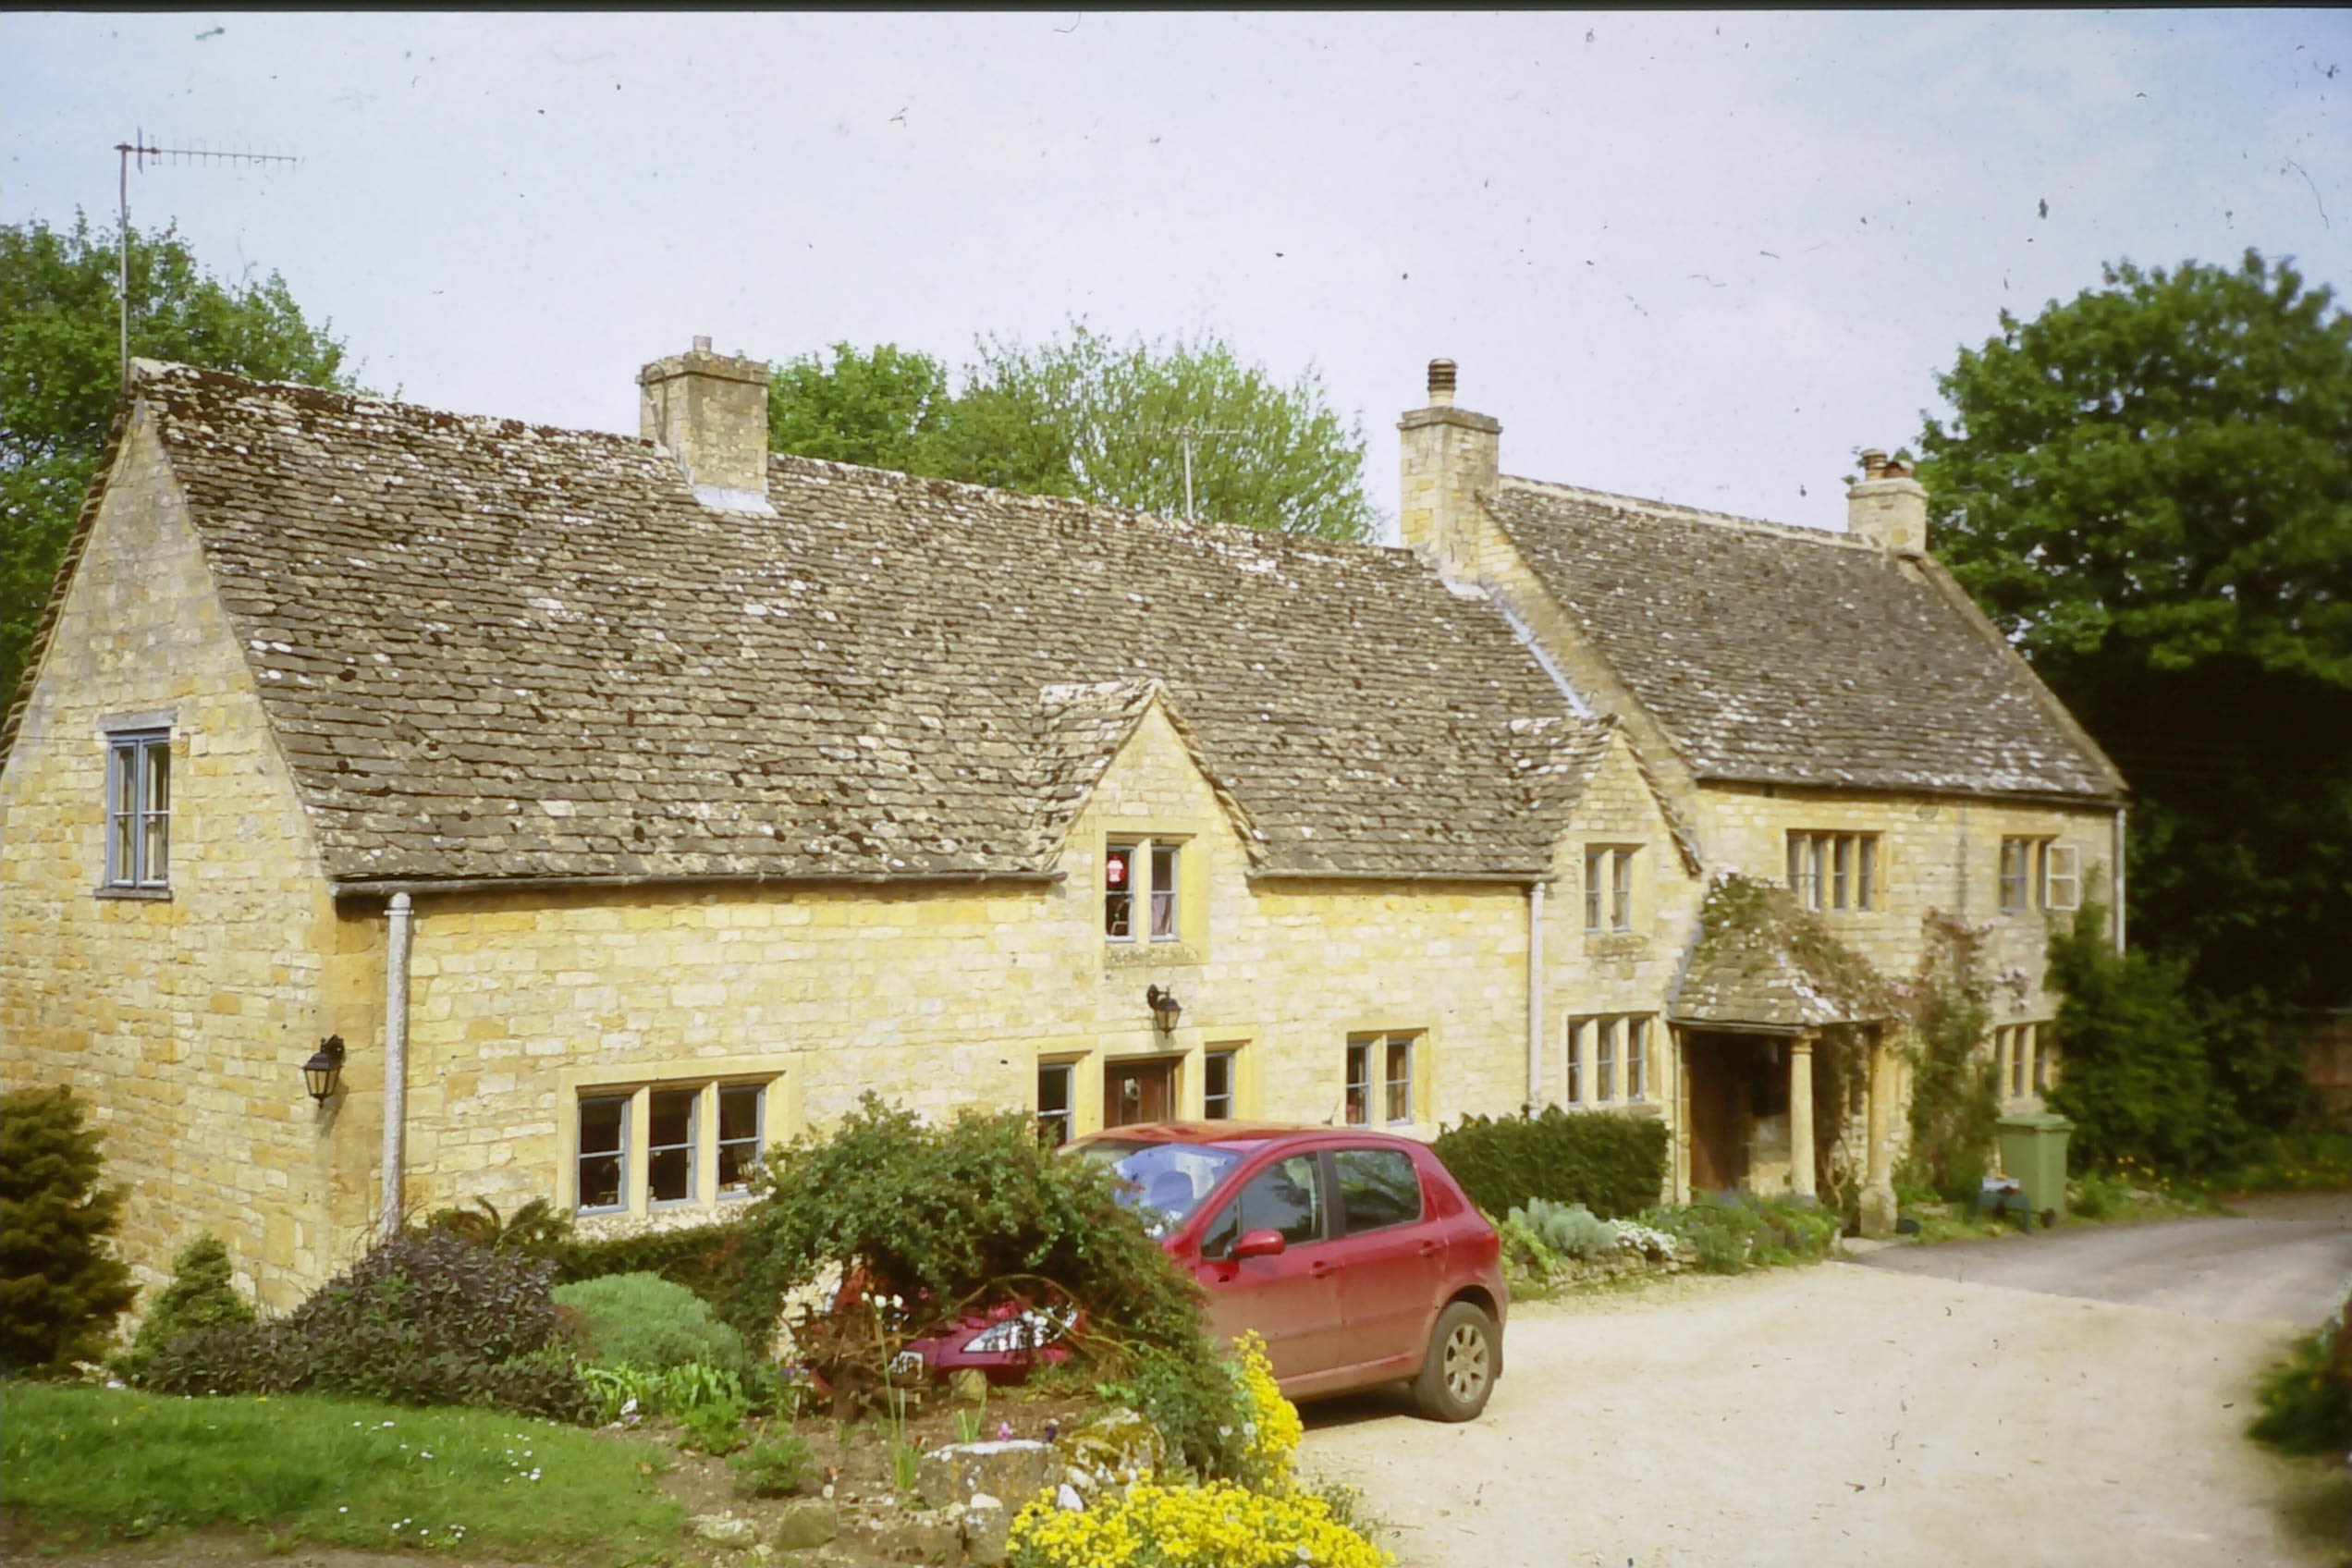 Guiting Power - Aelred Carlyle